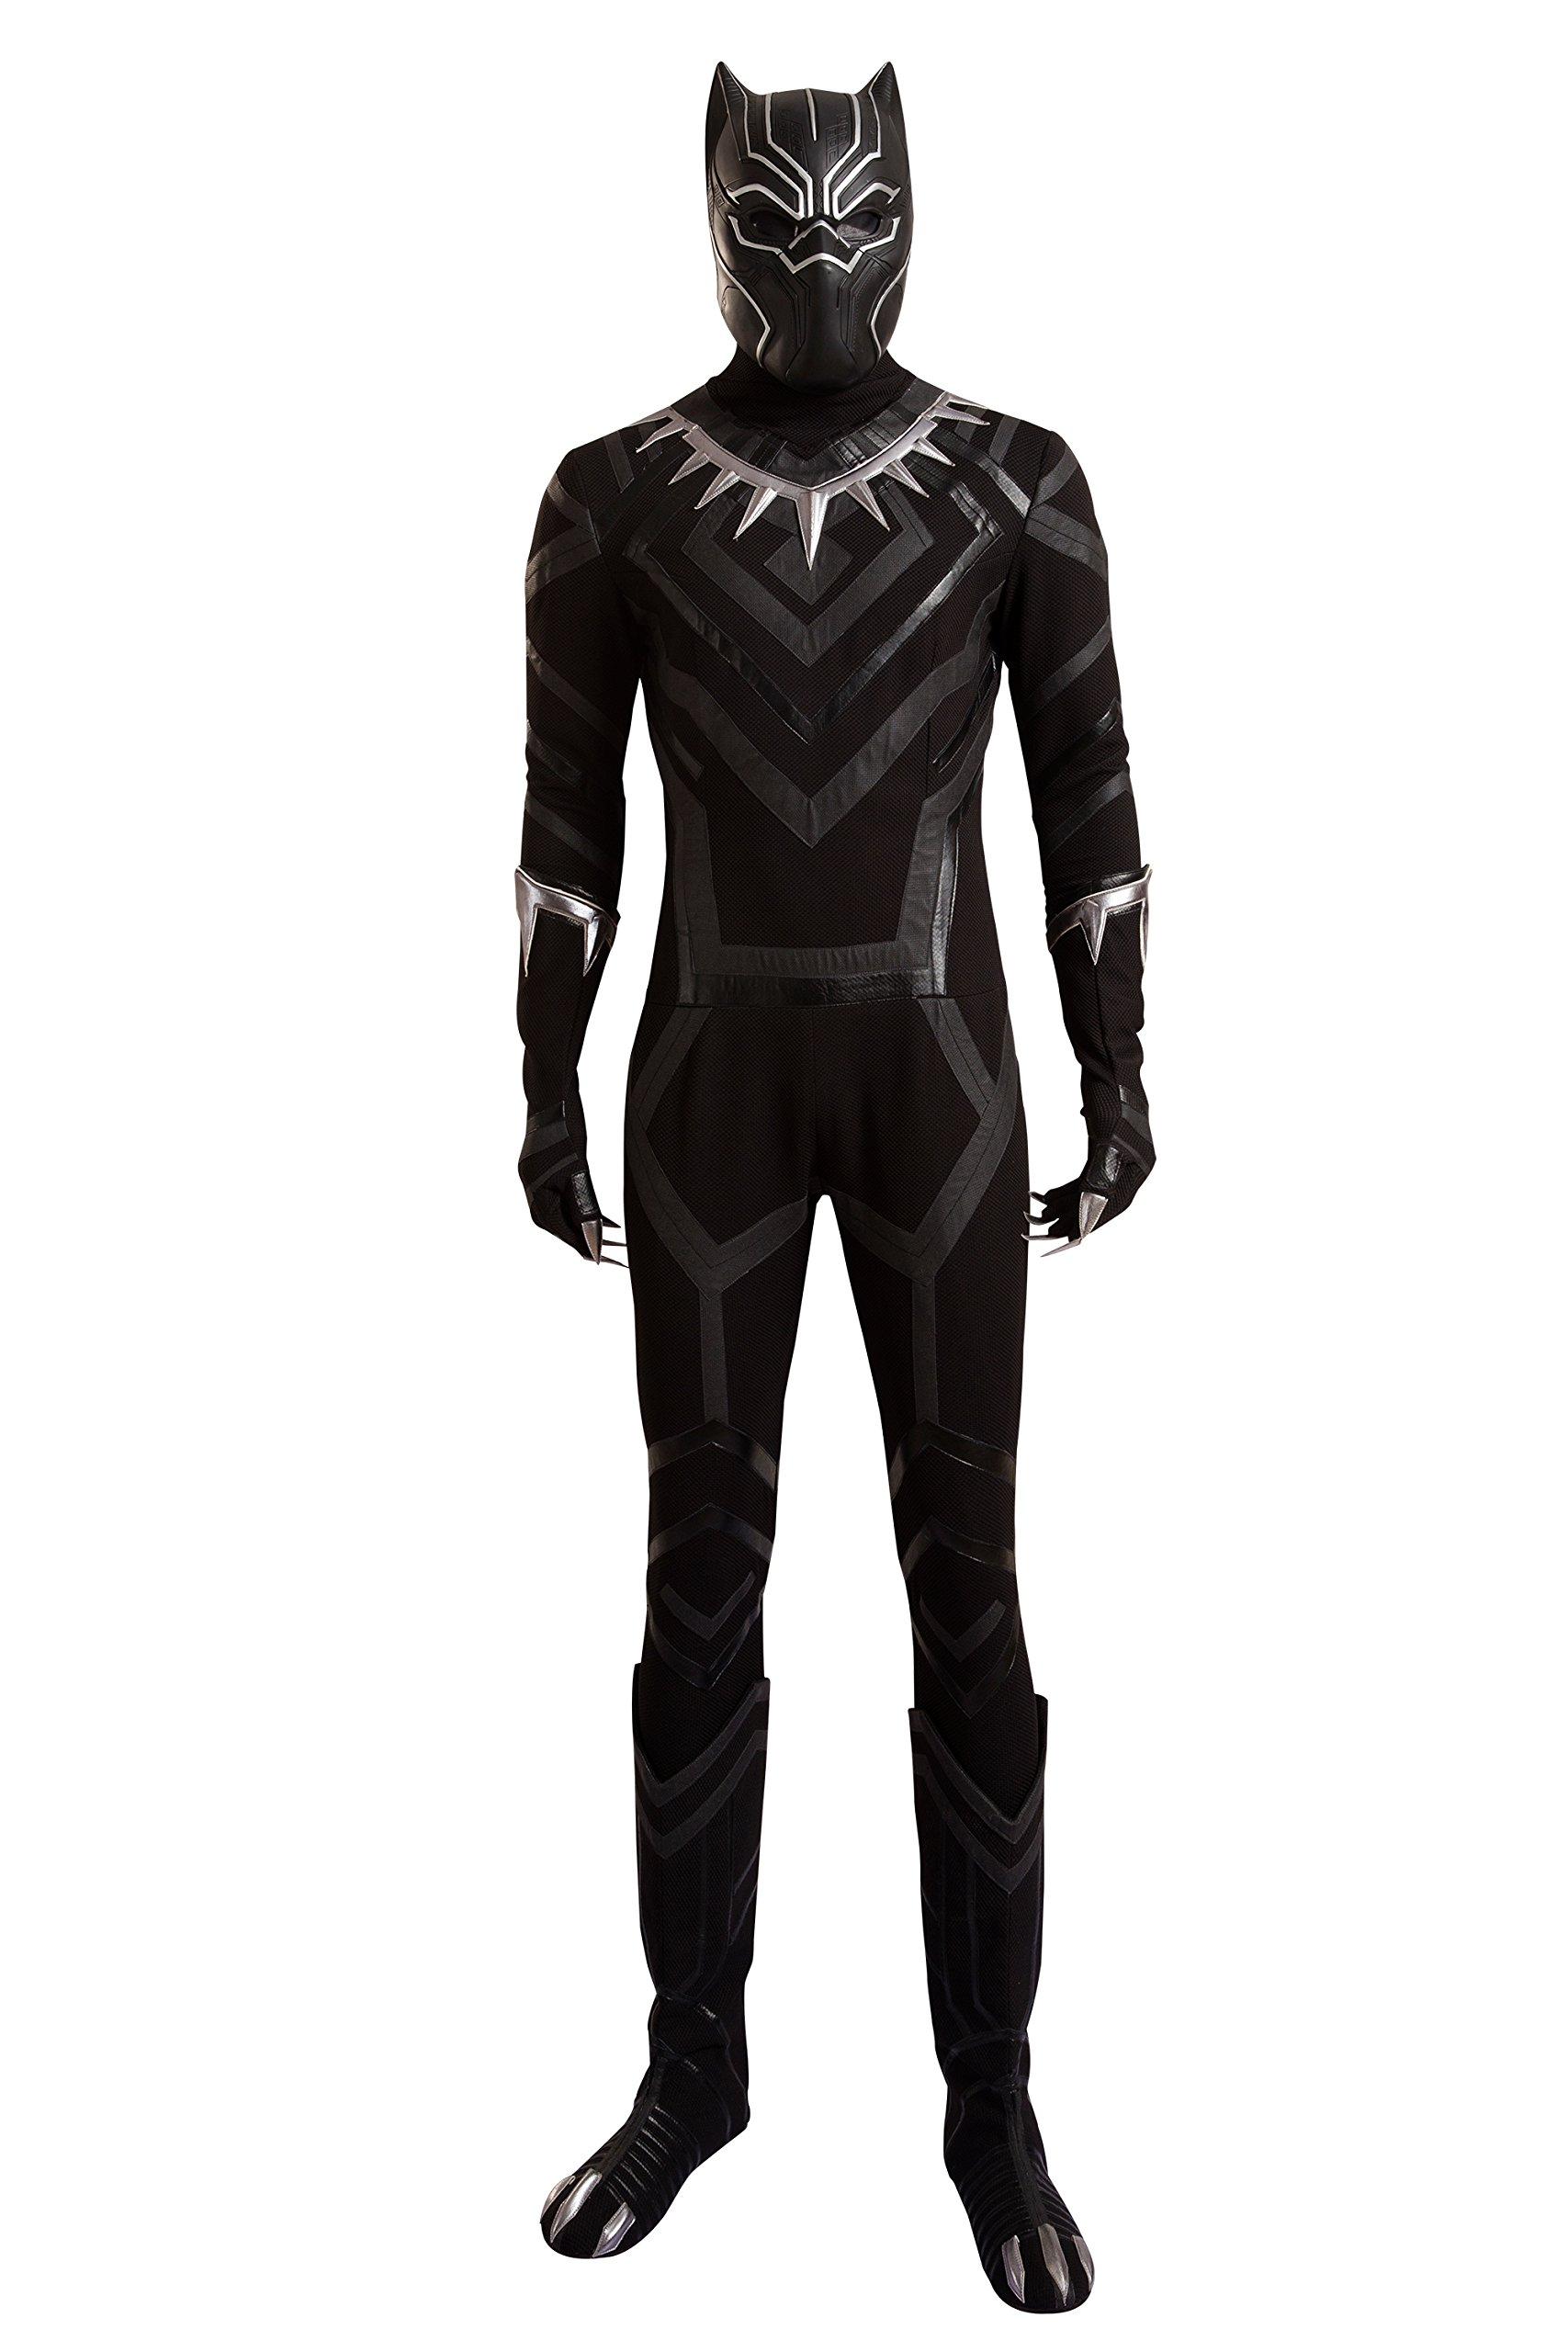 Cosfunmax Black Panther Cosplay Costume Suit Hot Movie Outfit Costume Accessory Halloween Male XXL